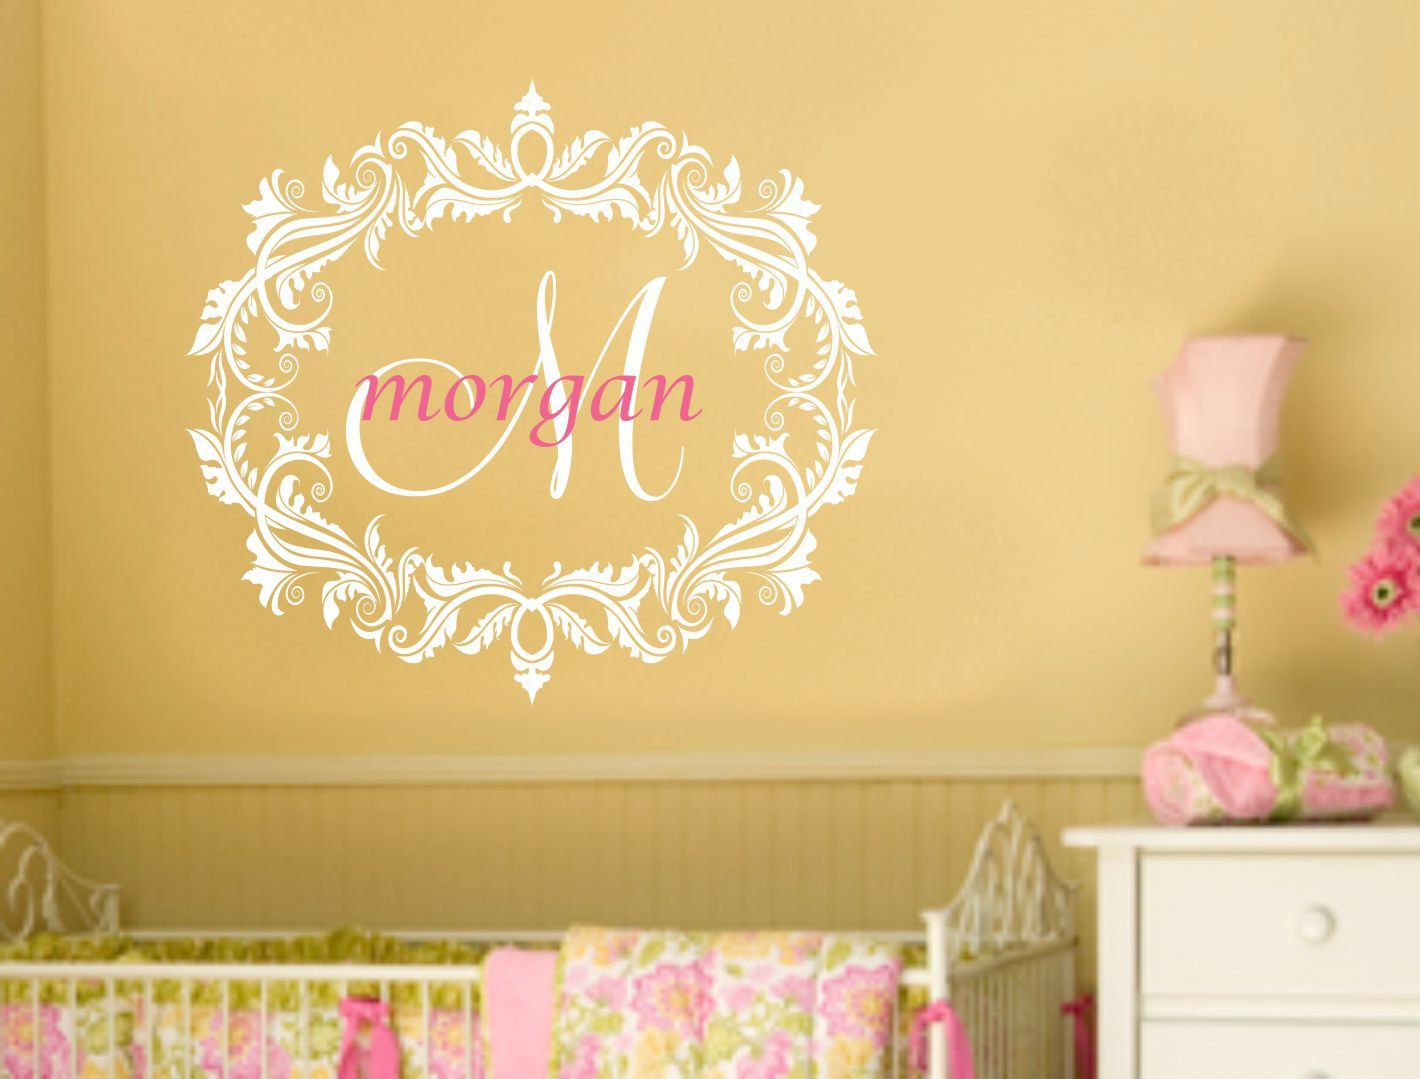 Wall Decals Nursery Monogram Wall Decal Baby Name Decals Coral Color ...